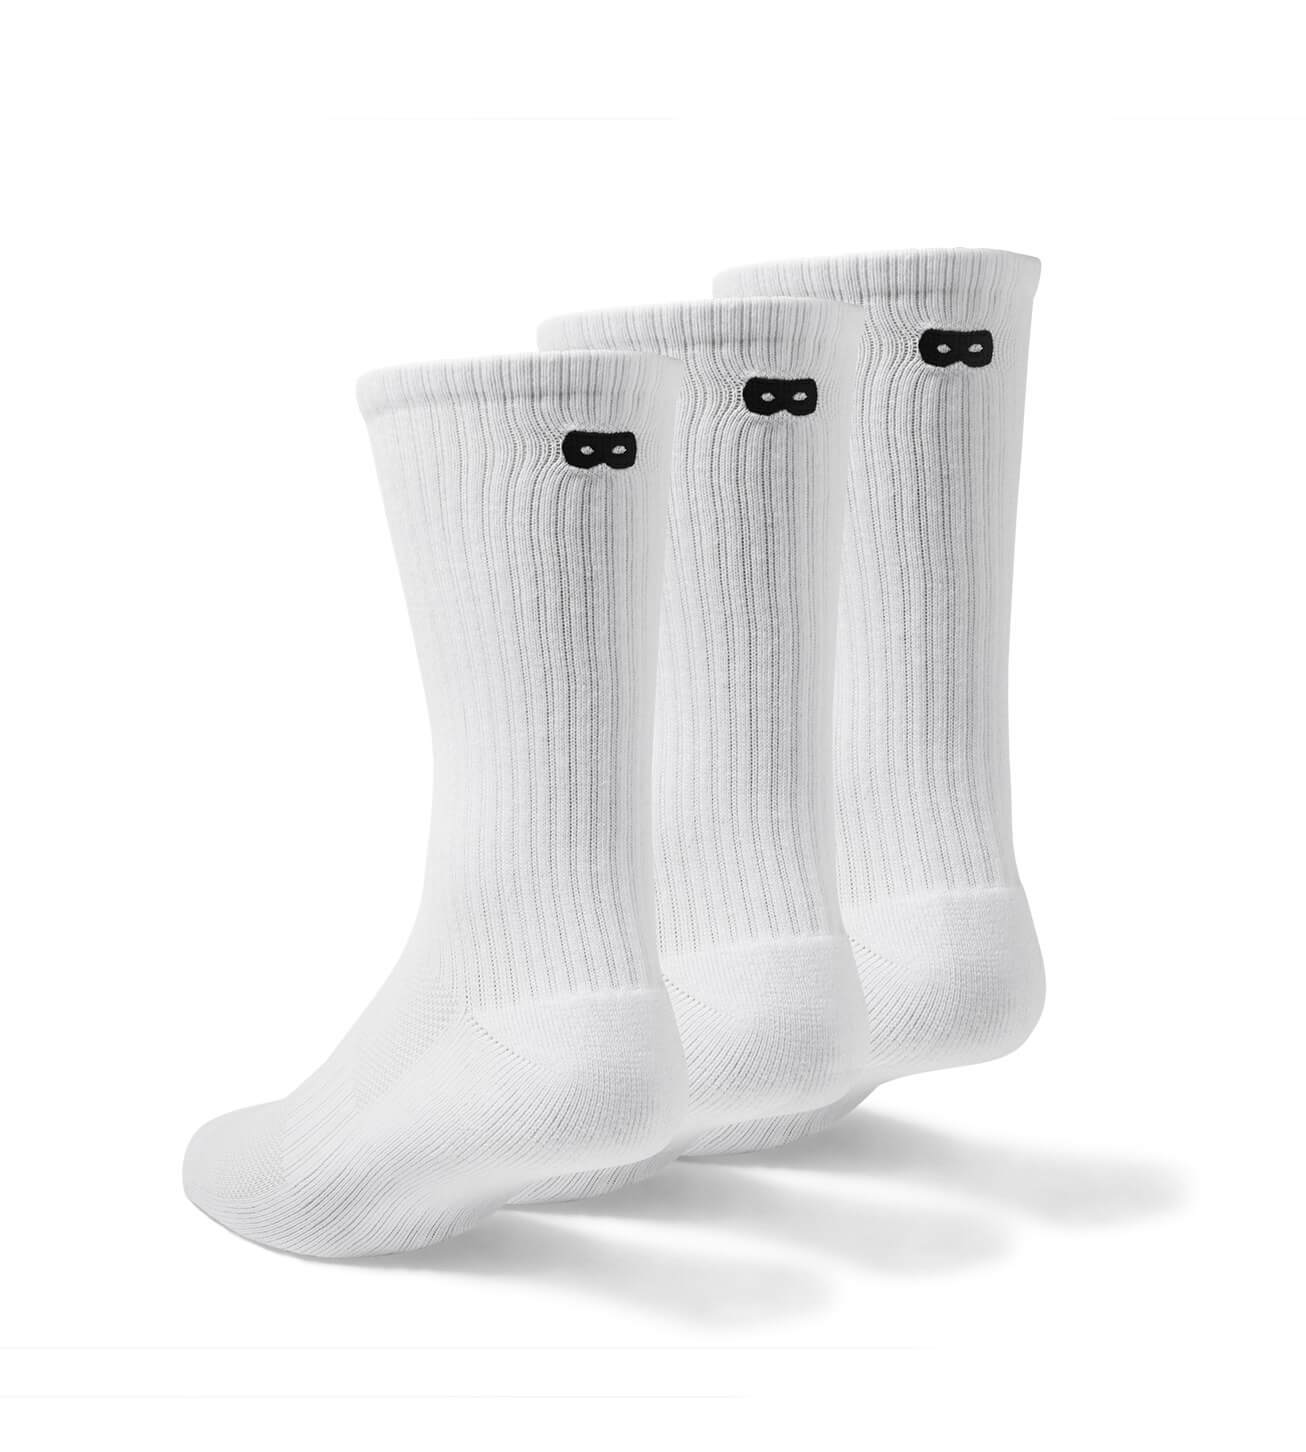 Whiteout Ribbed Men's Crew Socks 3 Pack